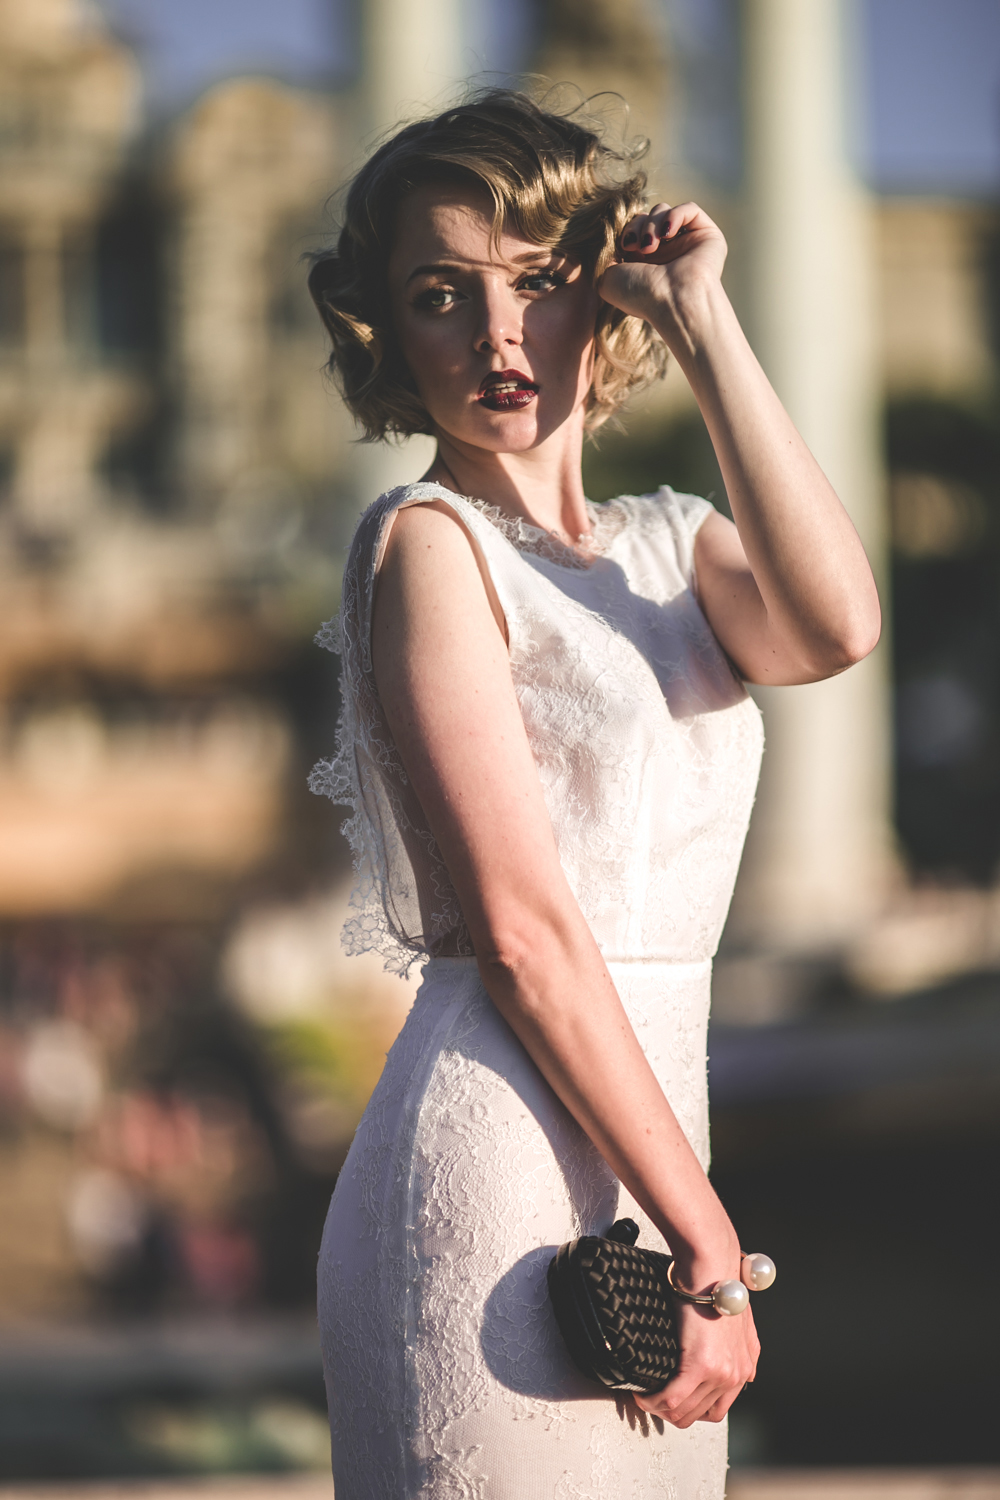 darya kamalova fashion blogger from thecablook in trip in Barcelona Spain with Pronovias 2015 wedding dresses collection catwalk wearing uel camilo white gown bottega veneta knot clutch and black lips-2137